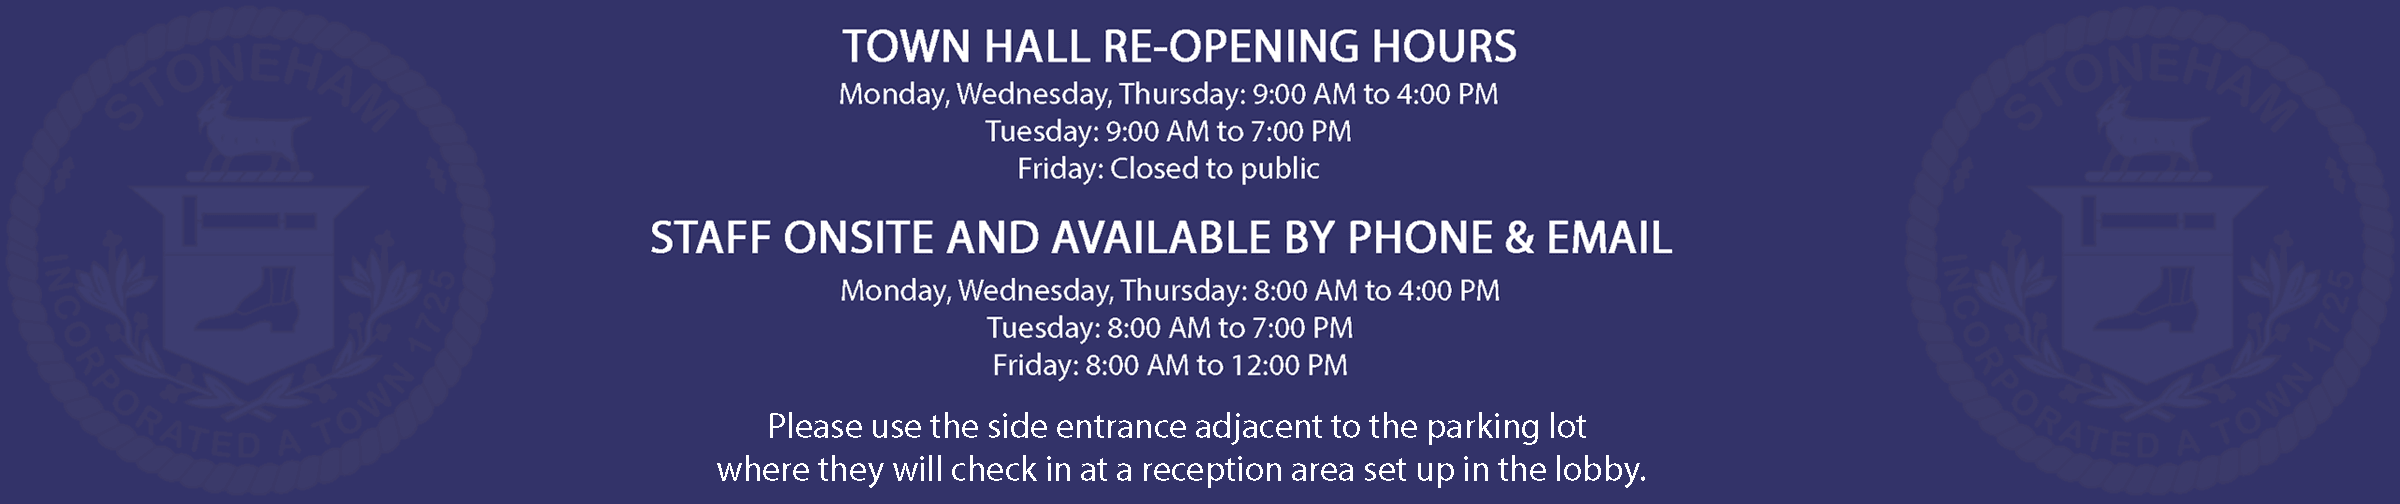 Town Hall Re-Opening Hours